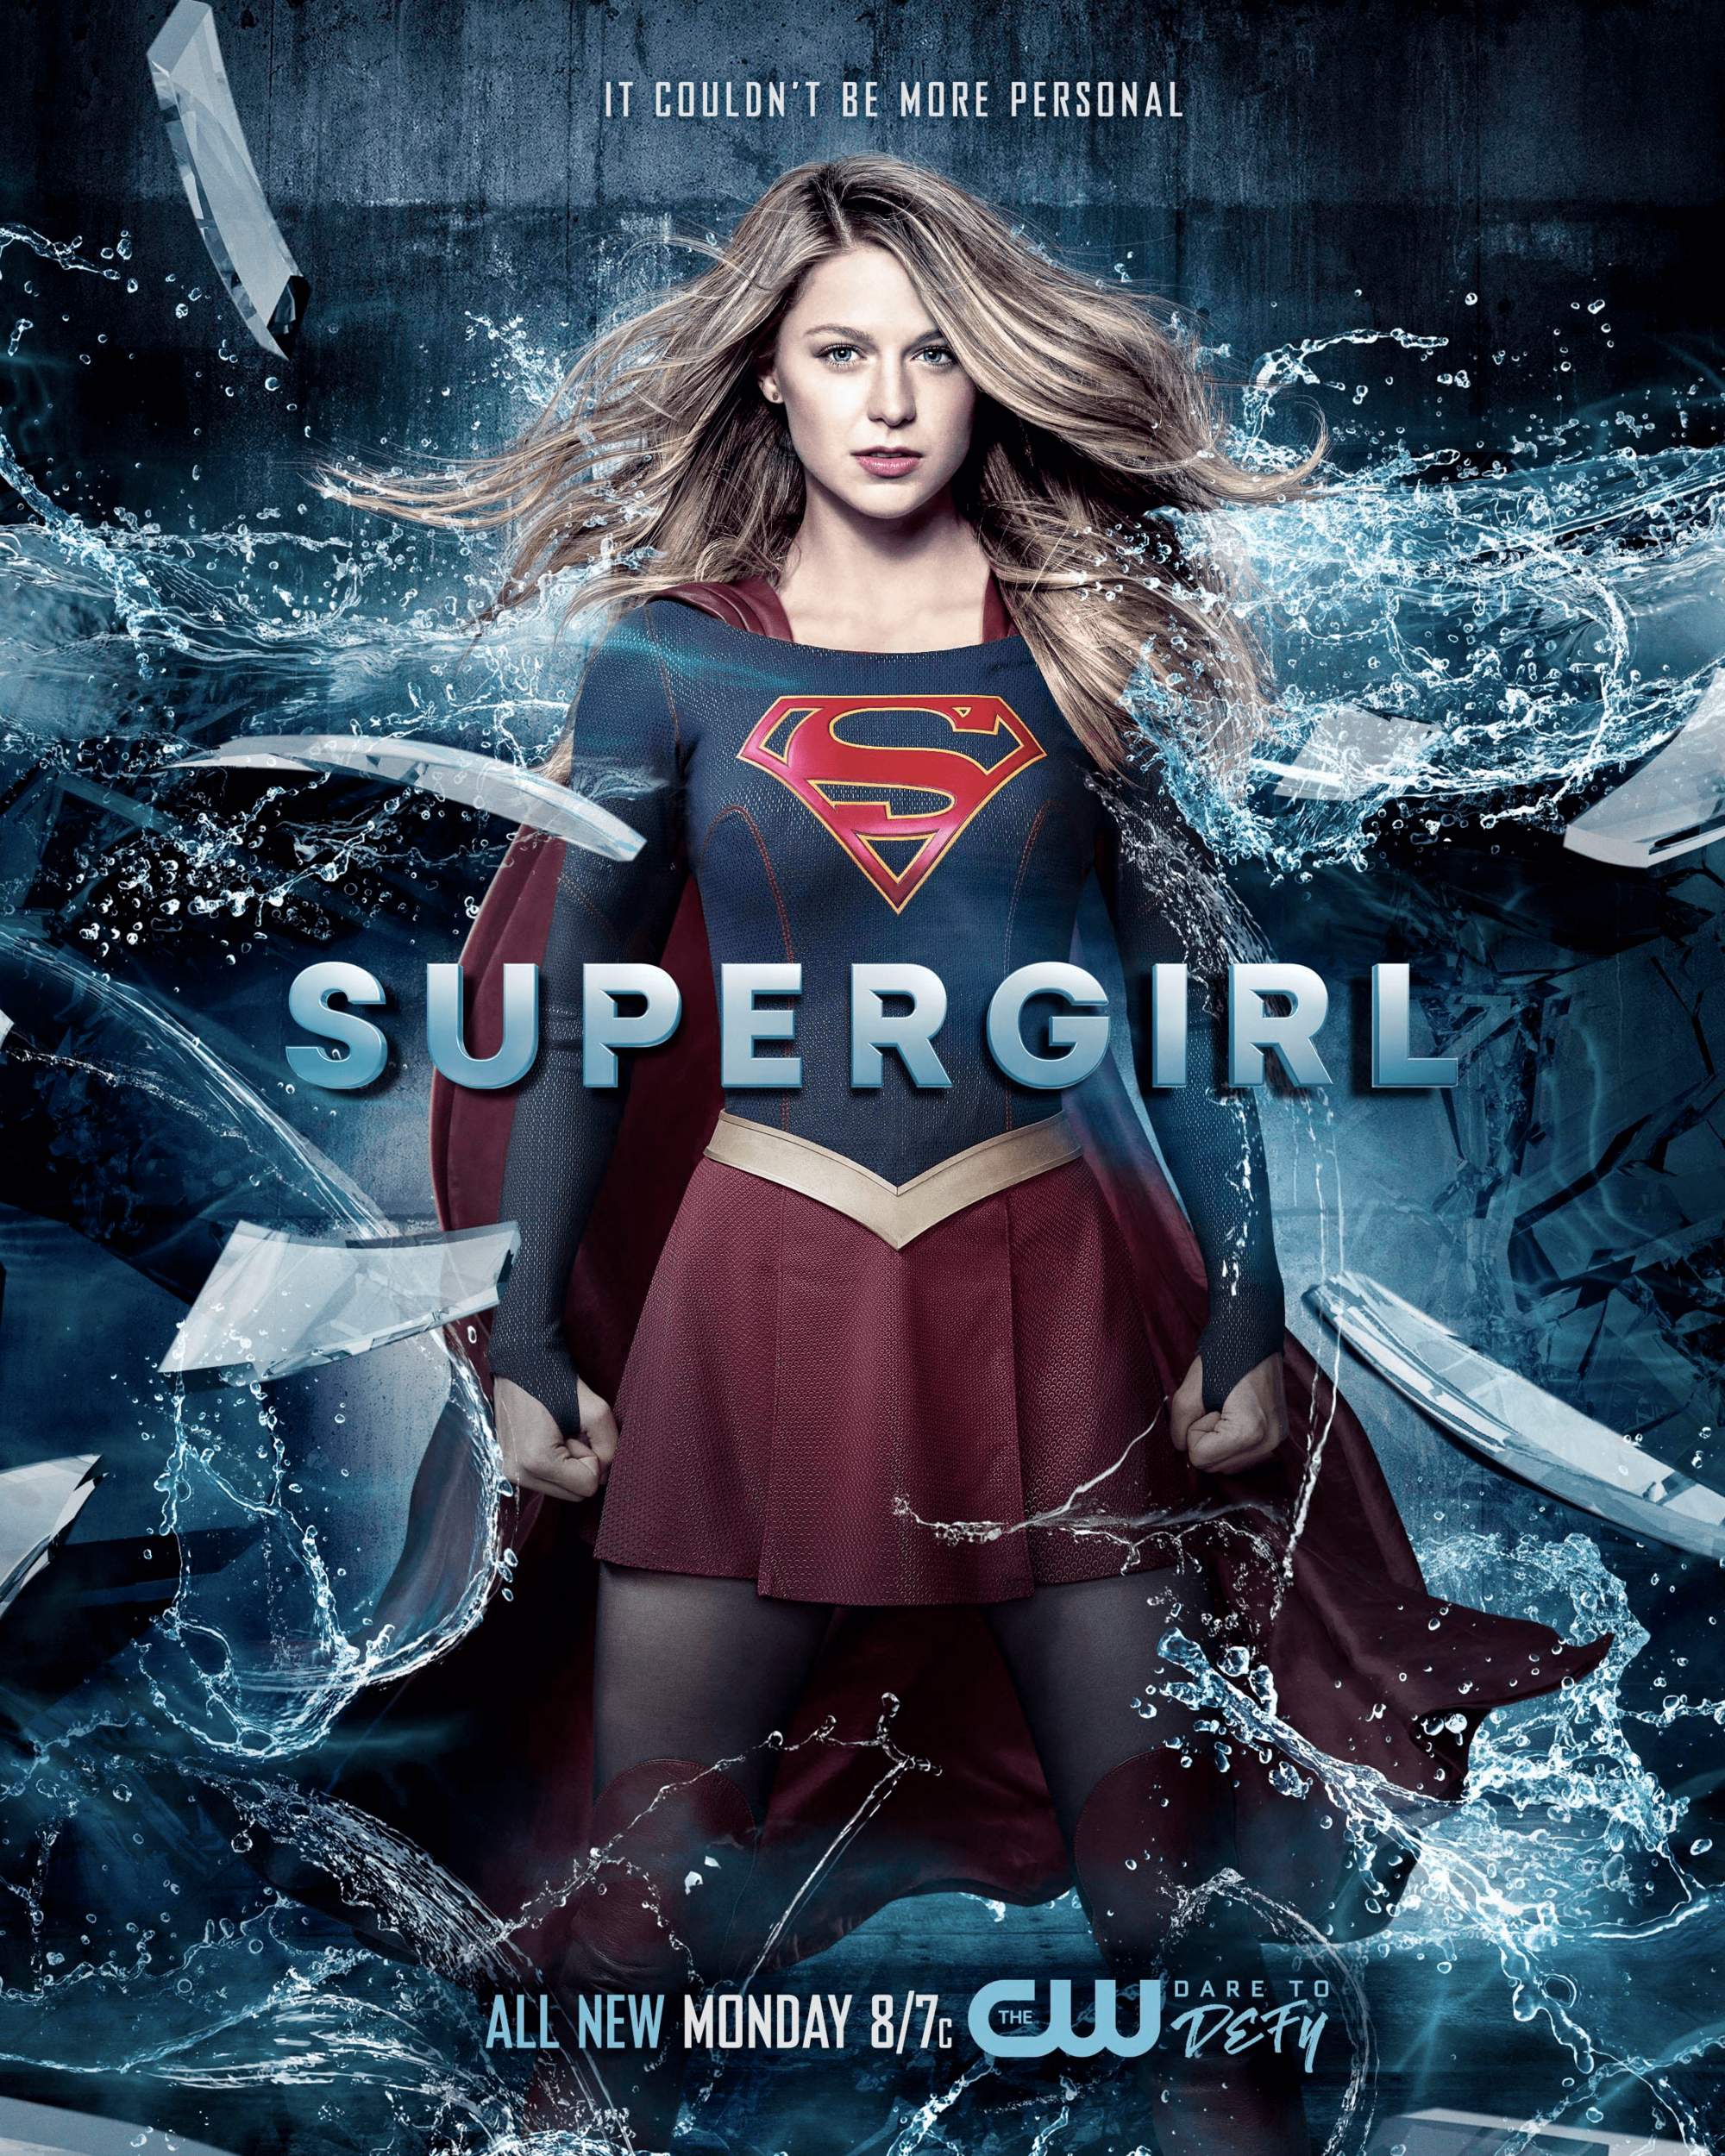 Supergirl Season 4 Episode 10